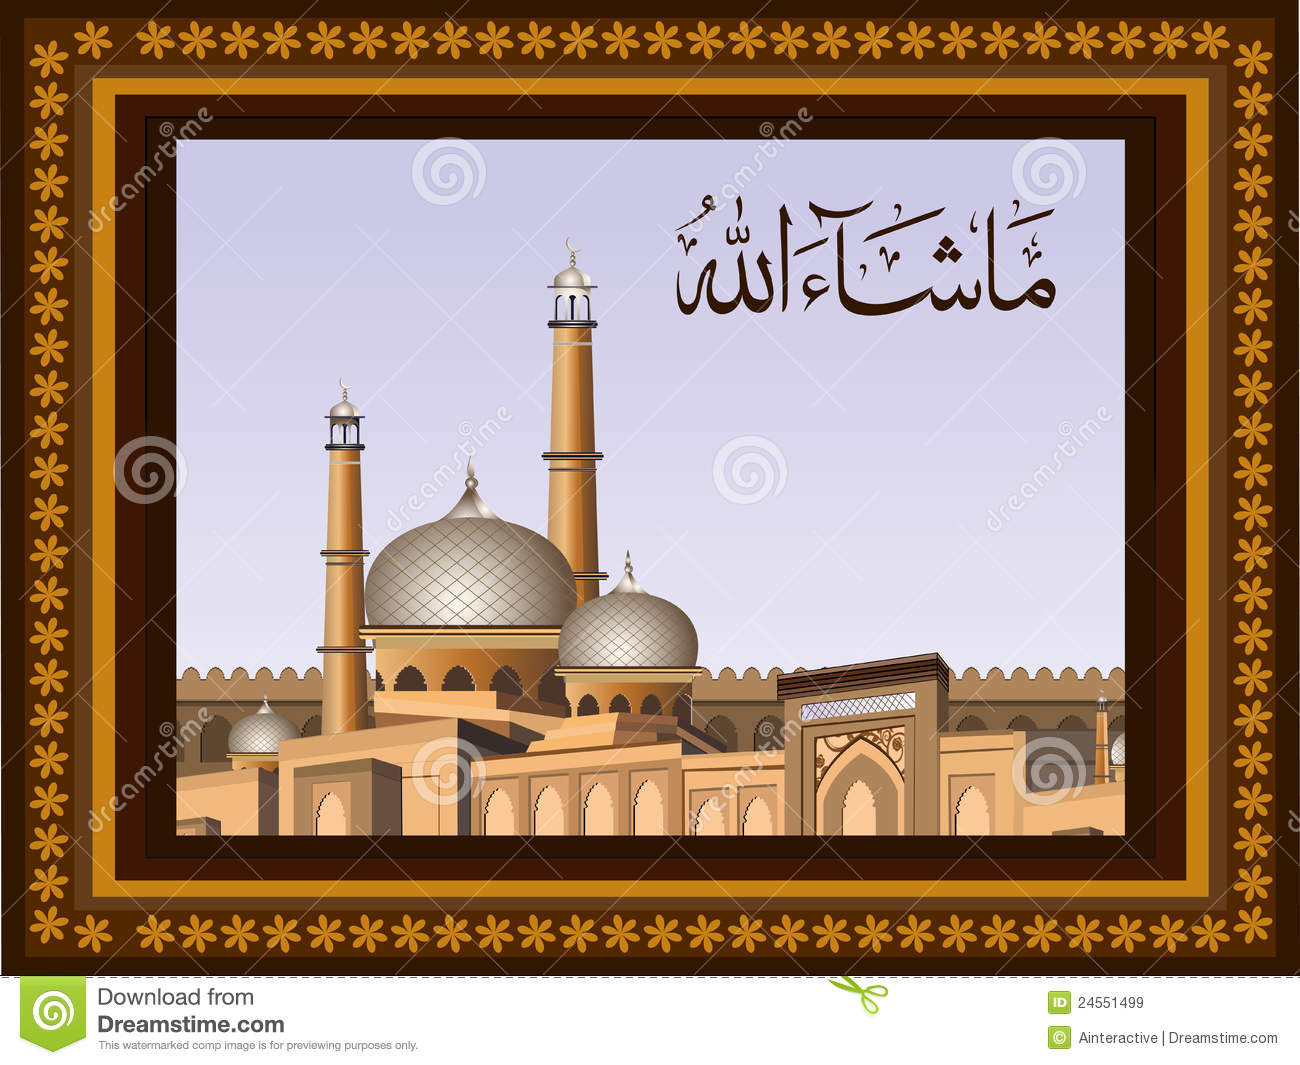 ... Masjid on modern abstract background with floral pattern & frame. EPS